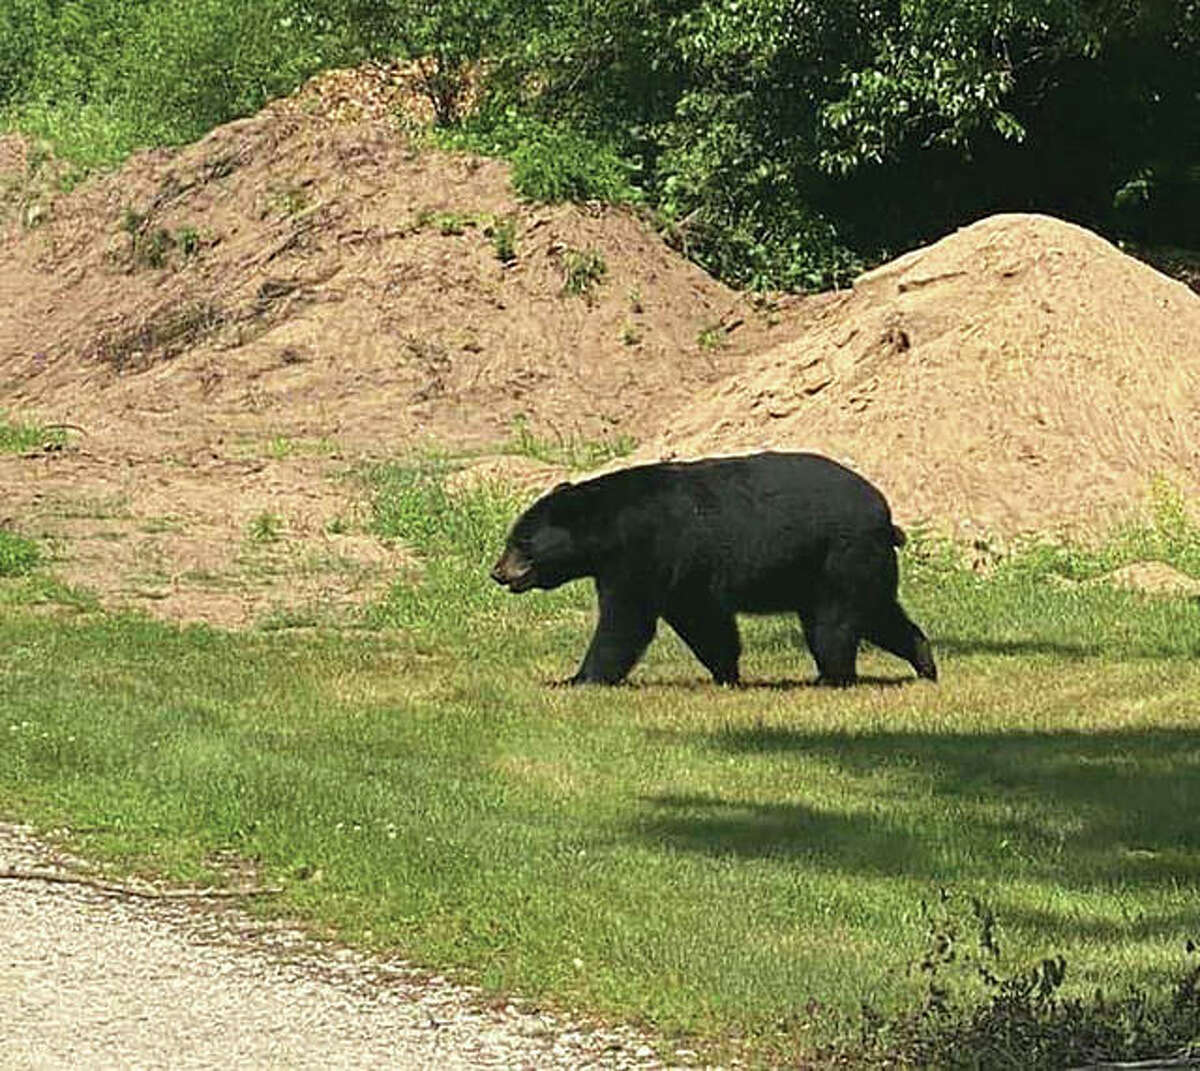 An American black bear is seen north of Illinois 27 near Barry, about 90 miles north of Alton, in June 2020. Eric Schauber of the Illinois Natural History Survey said the state usually sees an influx of black bears during springtime as them move from Wisconsin to Missouri and Kentucky.